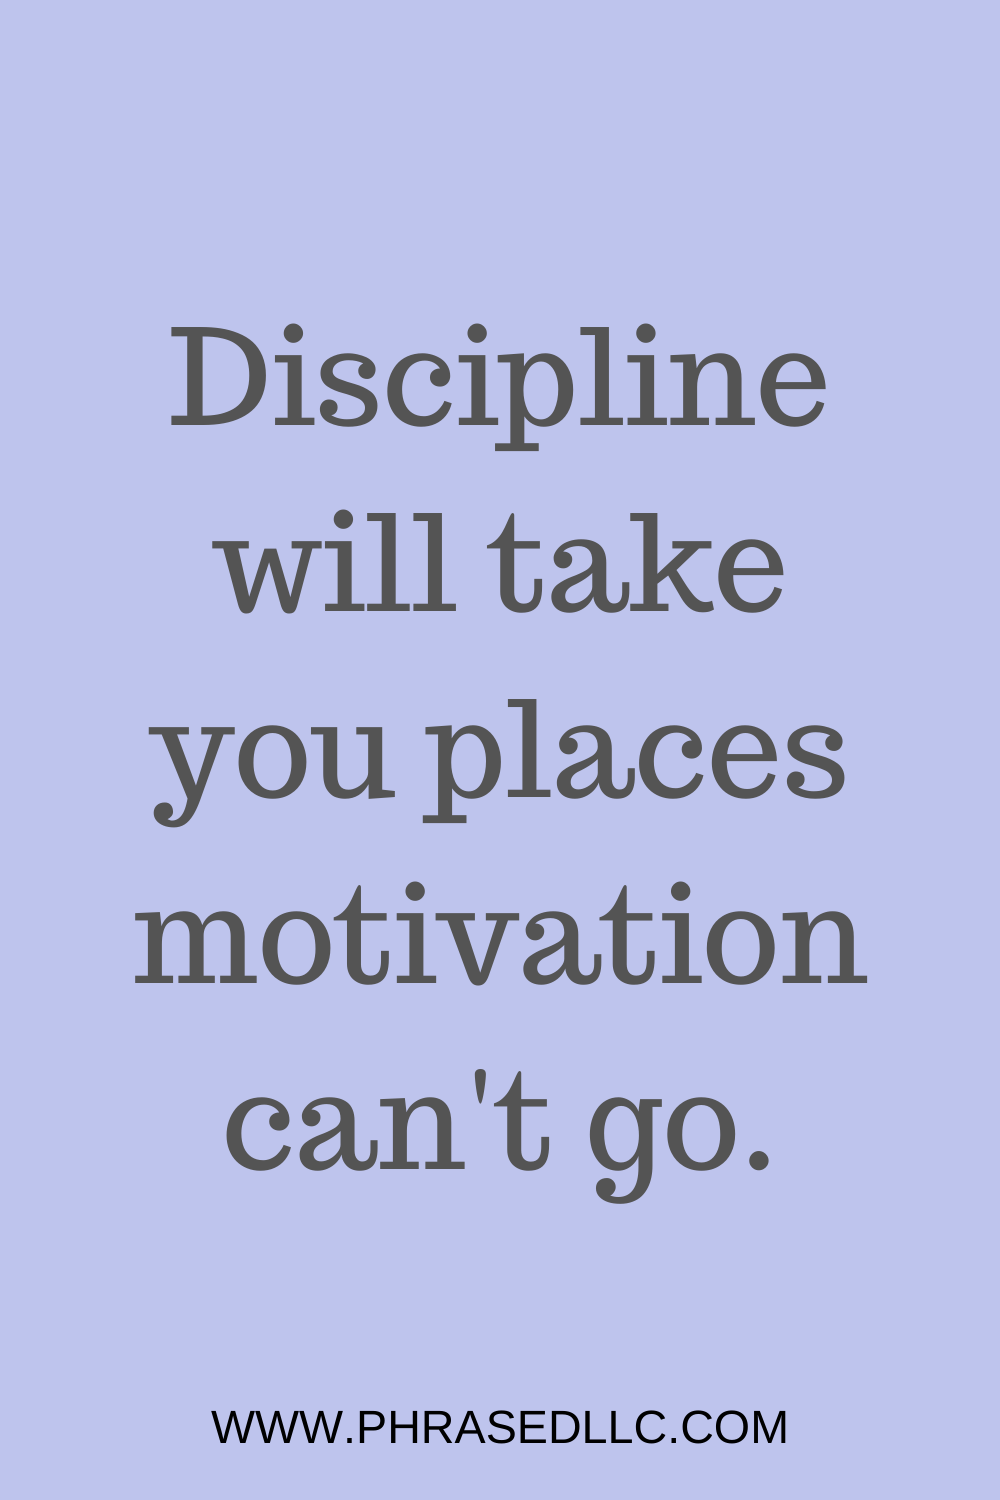 Short inspirational quote on the the importance of discipline over motivation.